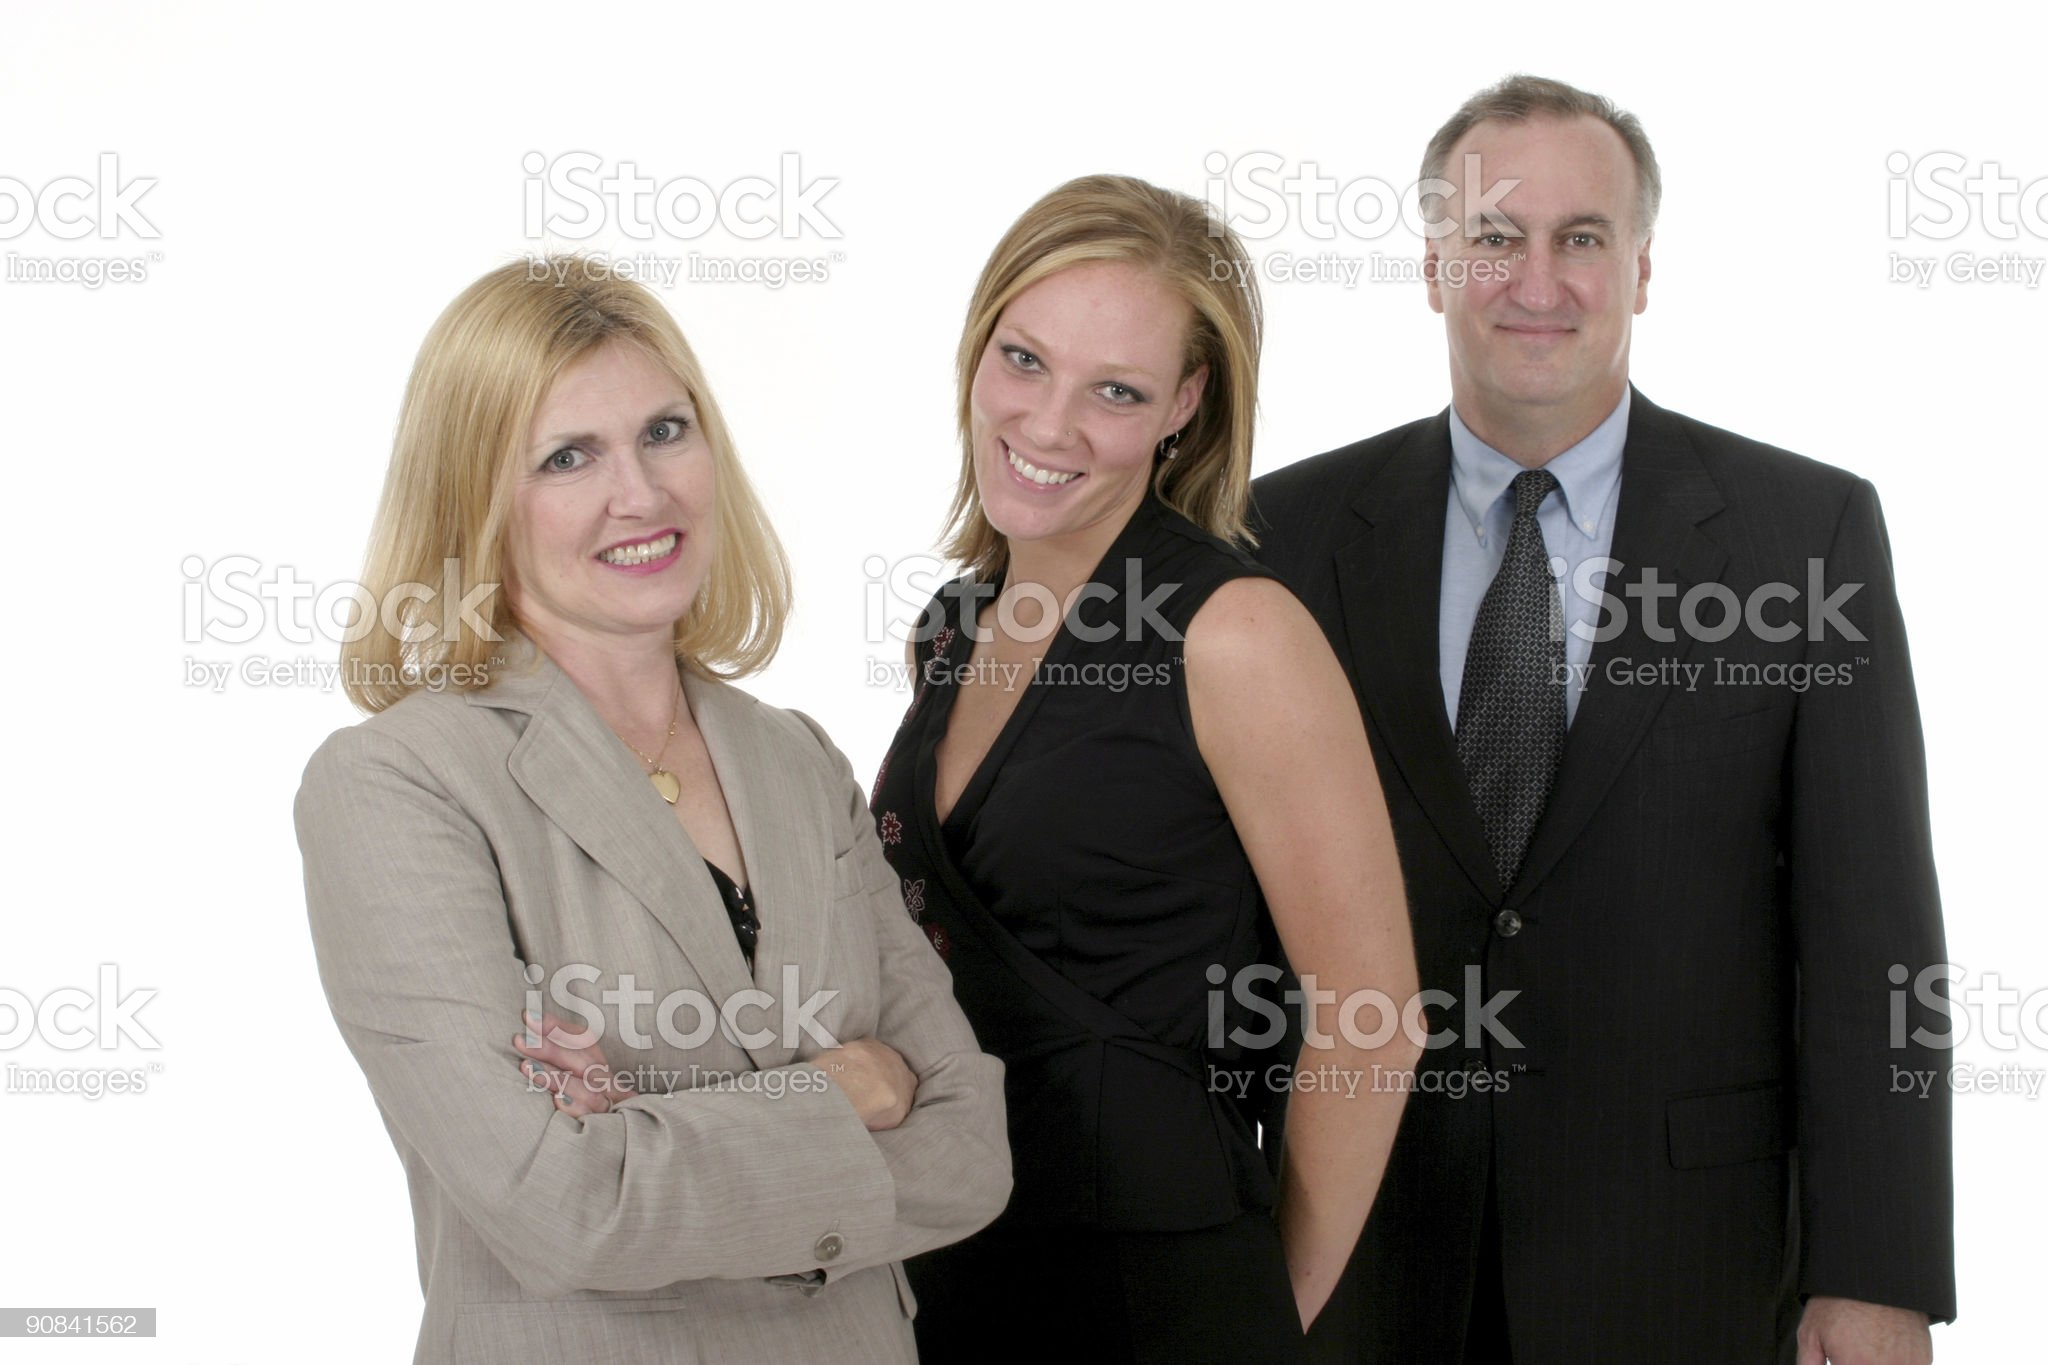 Three Person Business Team 2 royalty-free stock photo